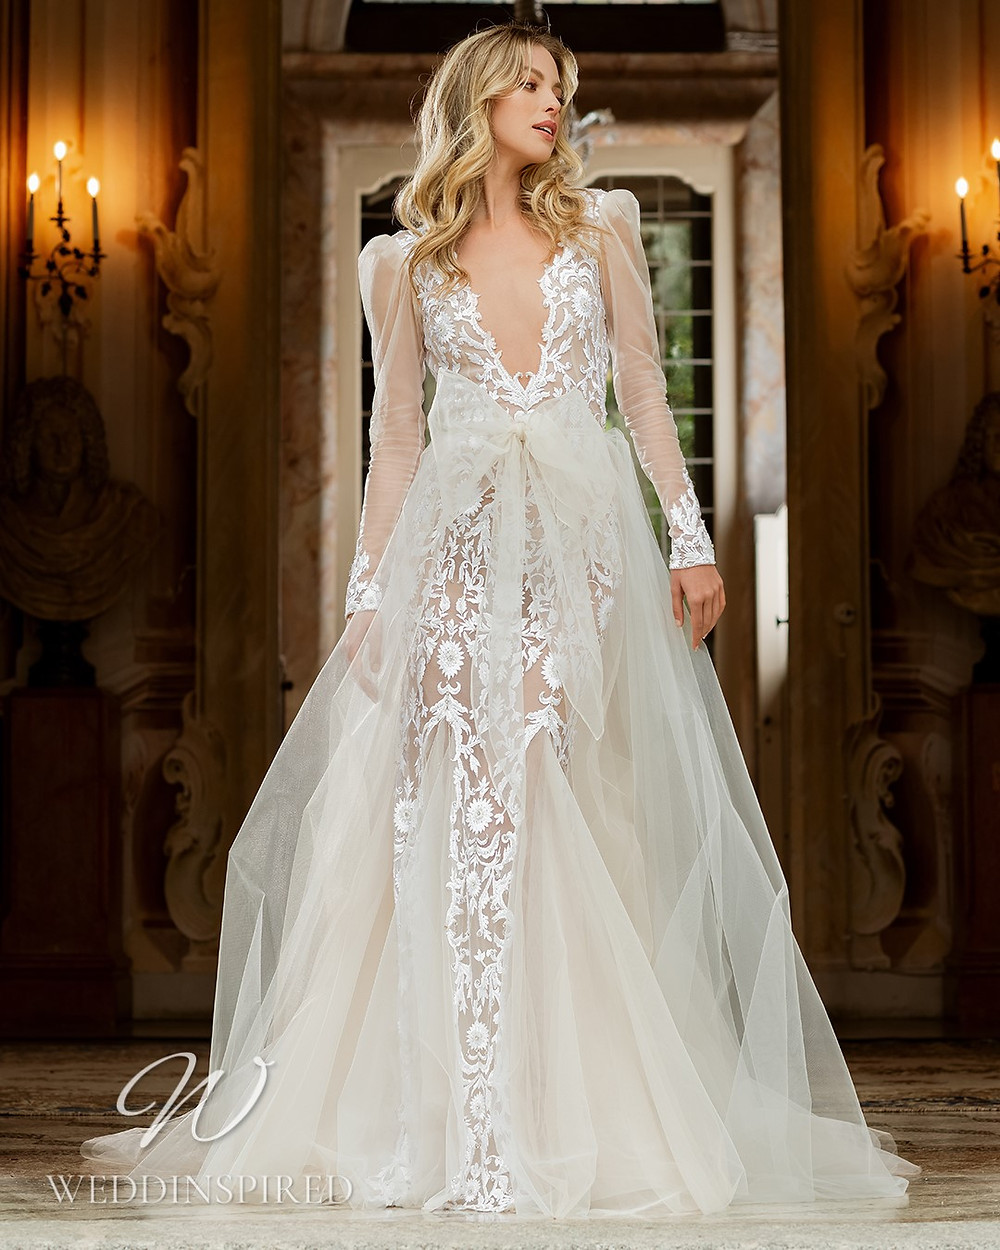 A Berta 2022 lace and tulle A-line wedding dress with long sleeves